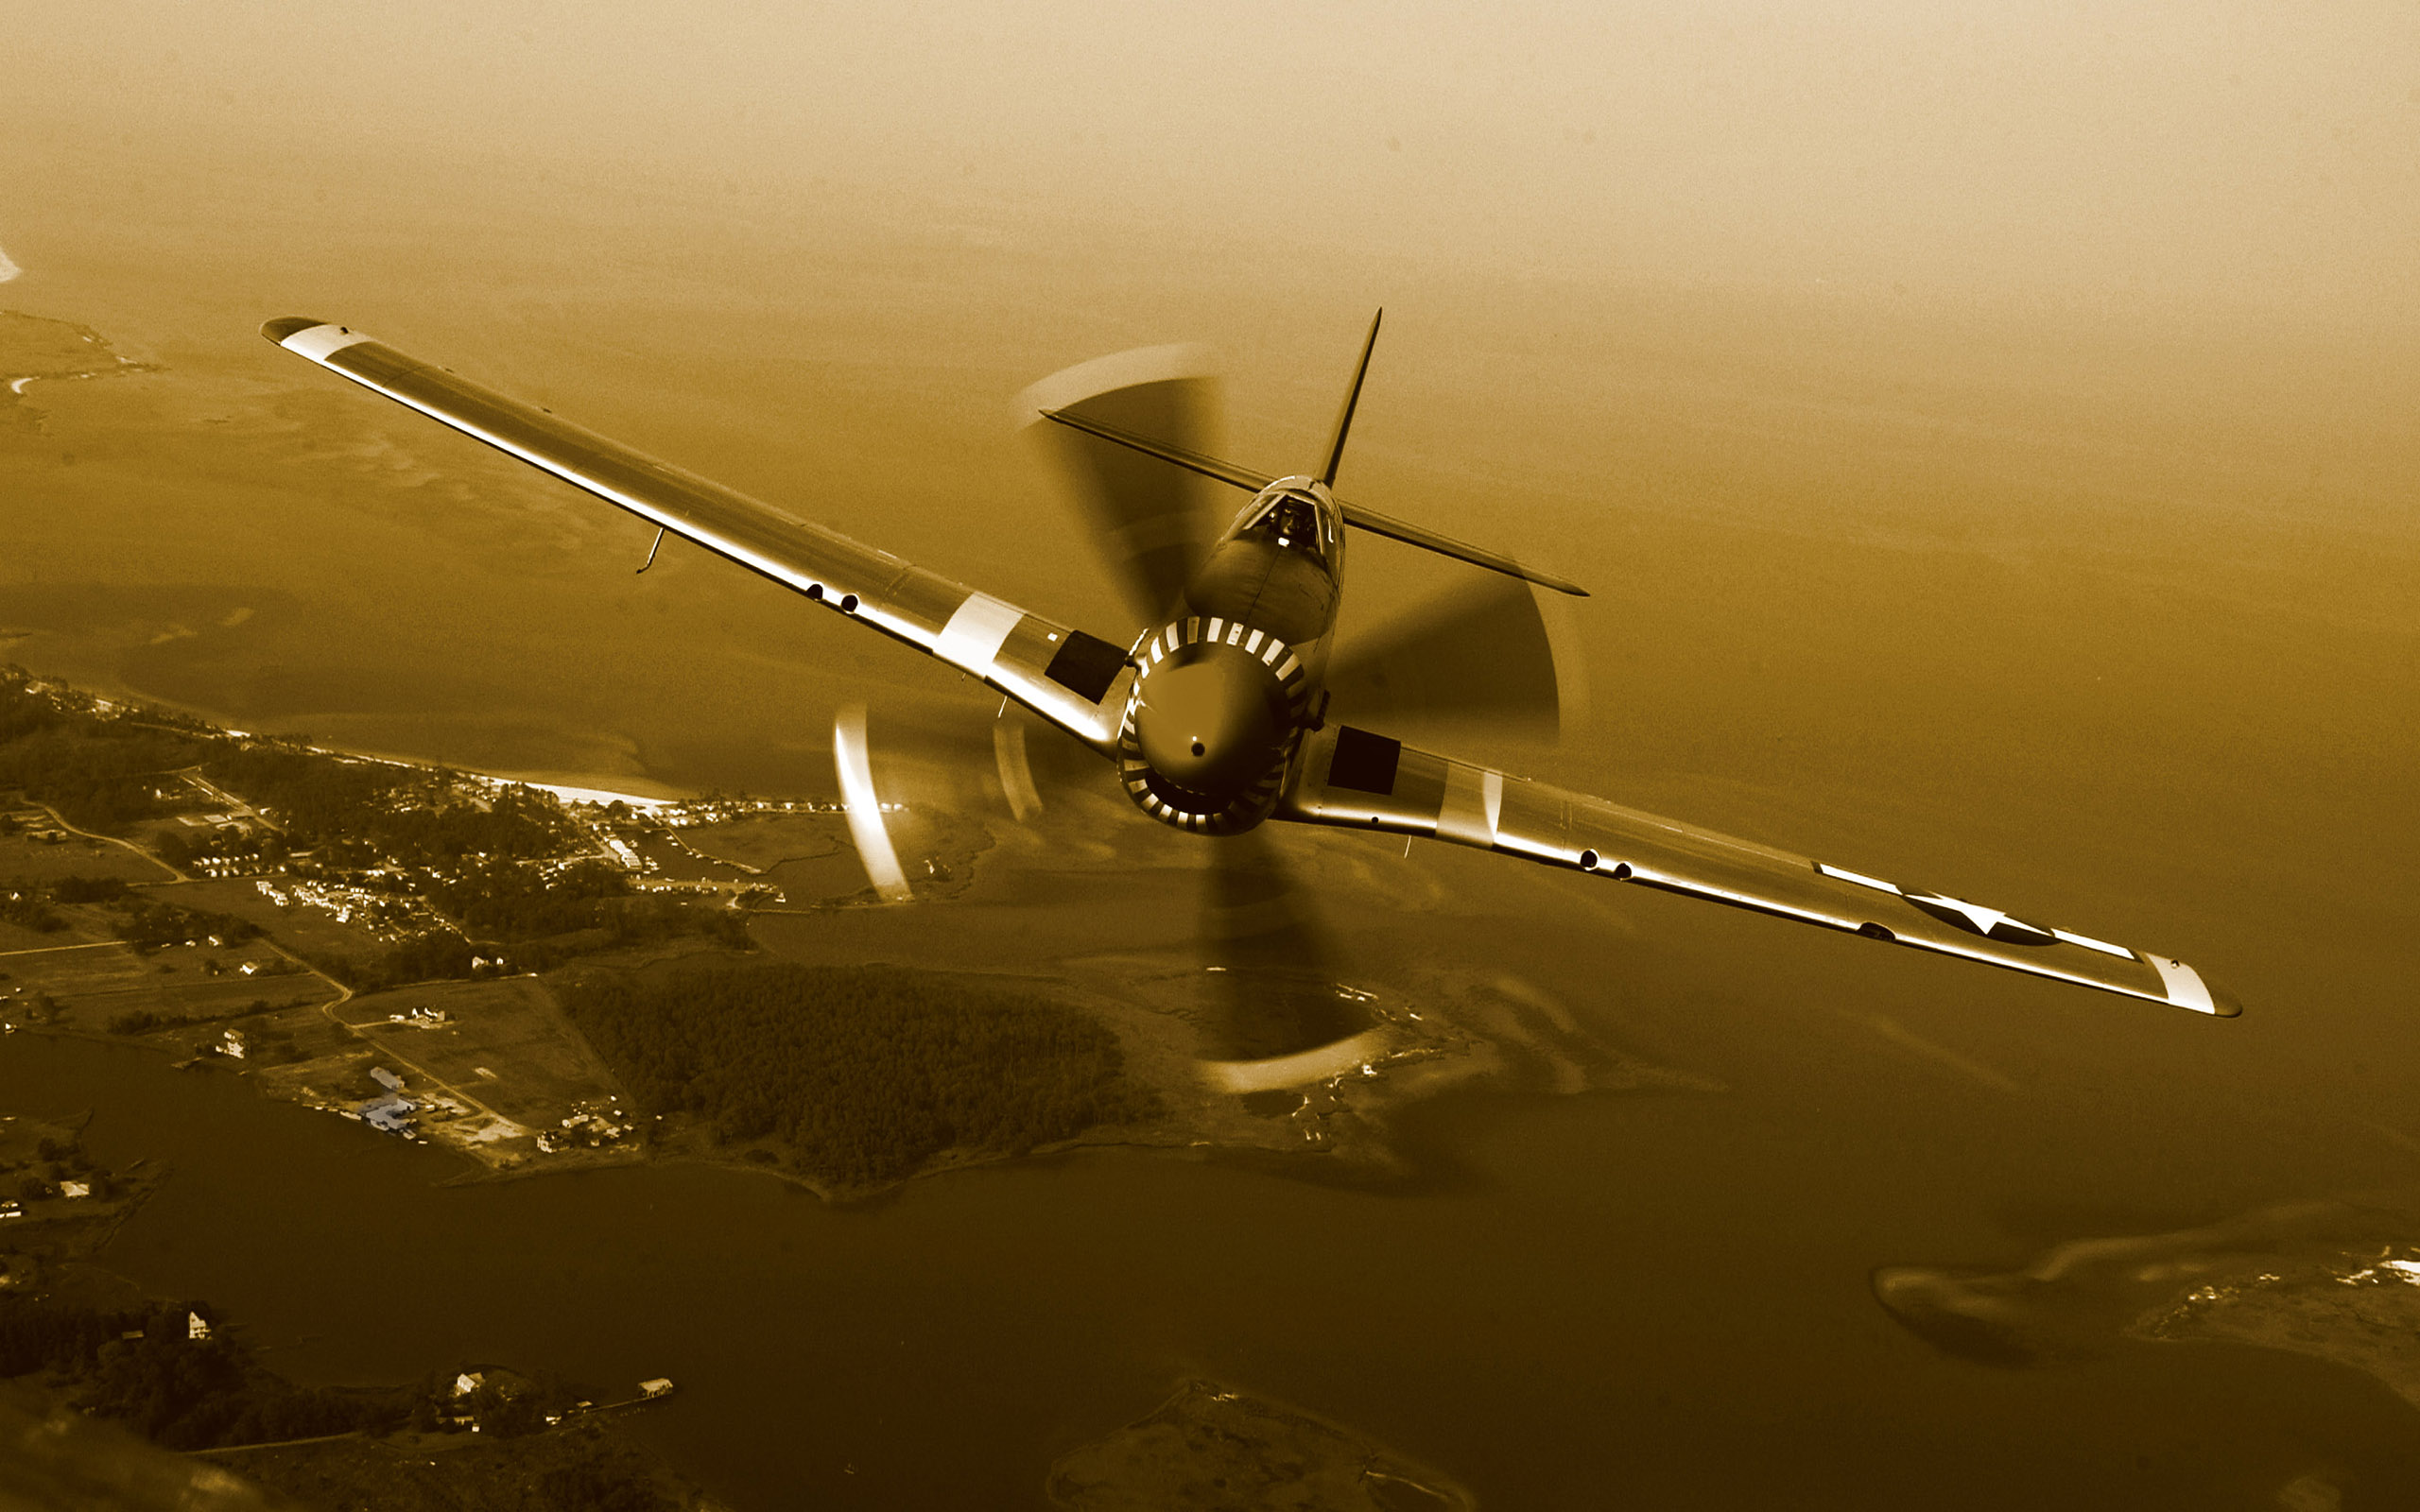 Imghdnet Provide Top Vintage Airplane Wallpapers in Various size 2560x1600